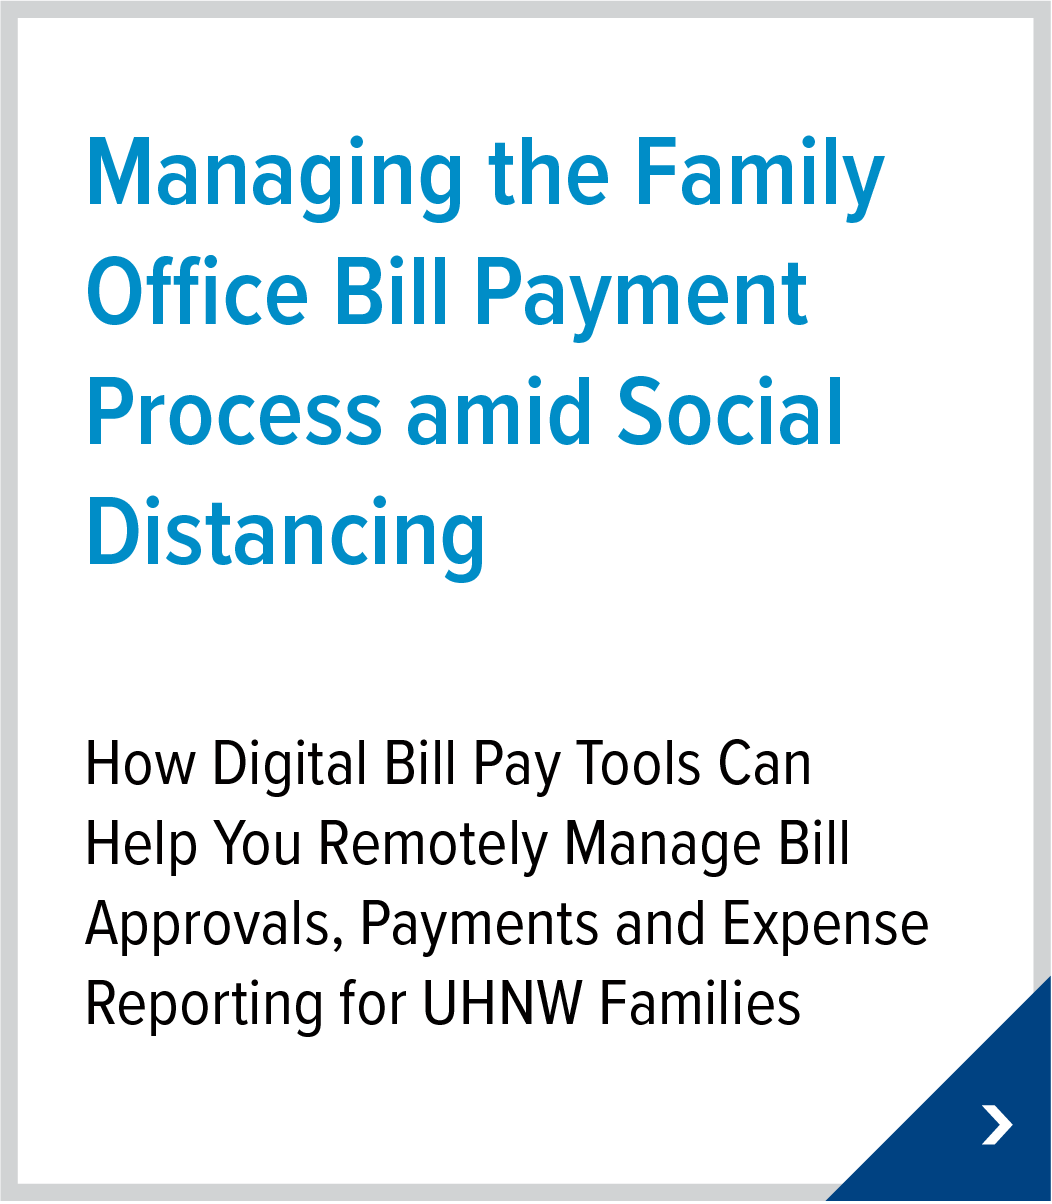 Managing the Family Office Bill Payment Process amid Social Distancing